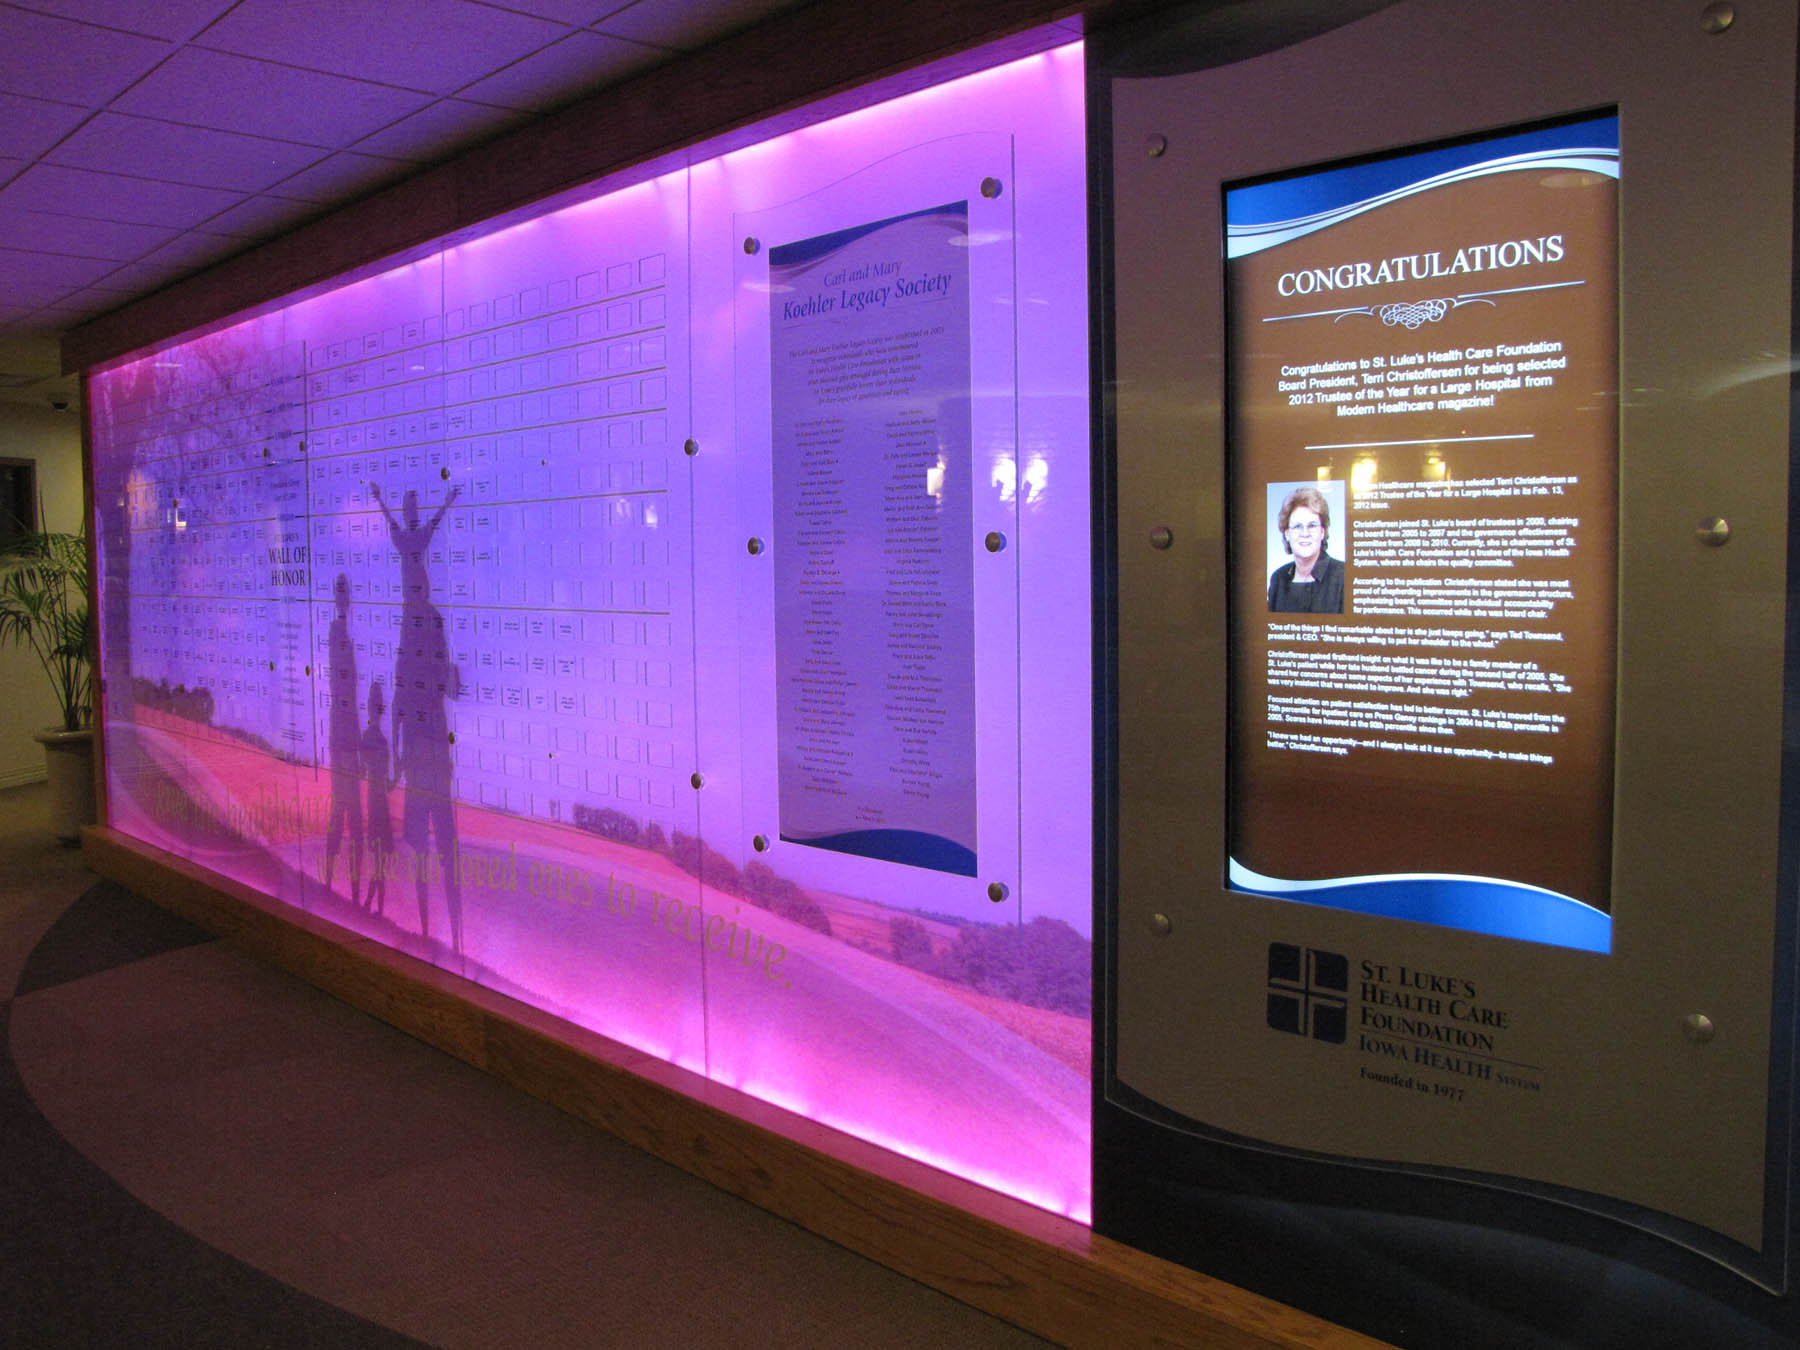 10 Reasons to Use Digital Signage for Donor Walls